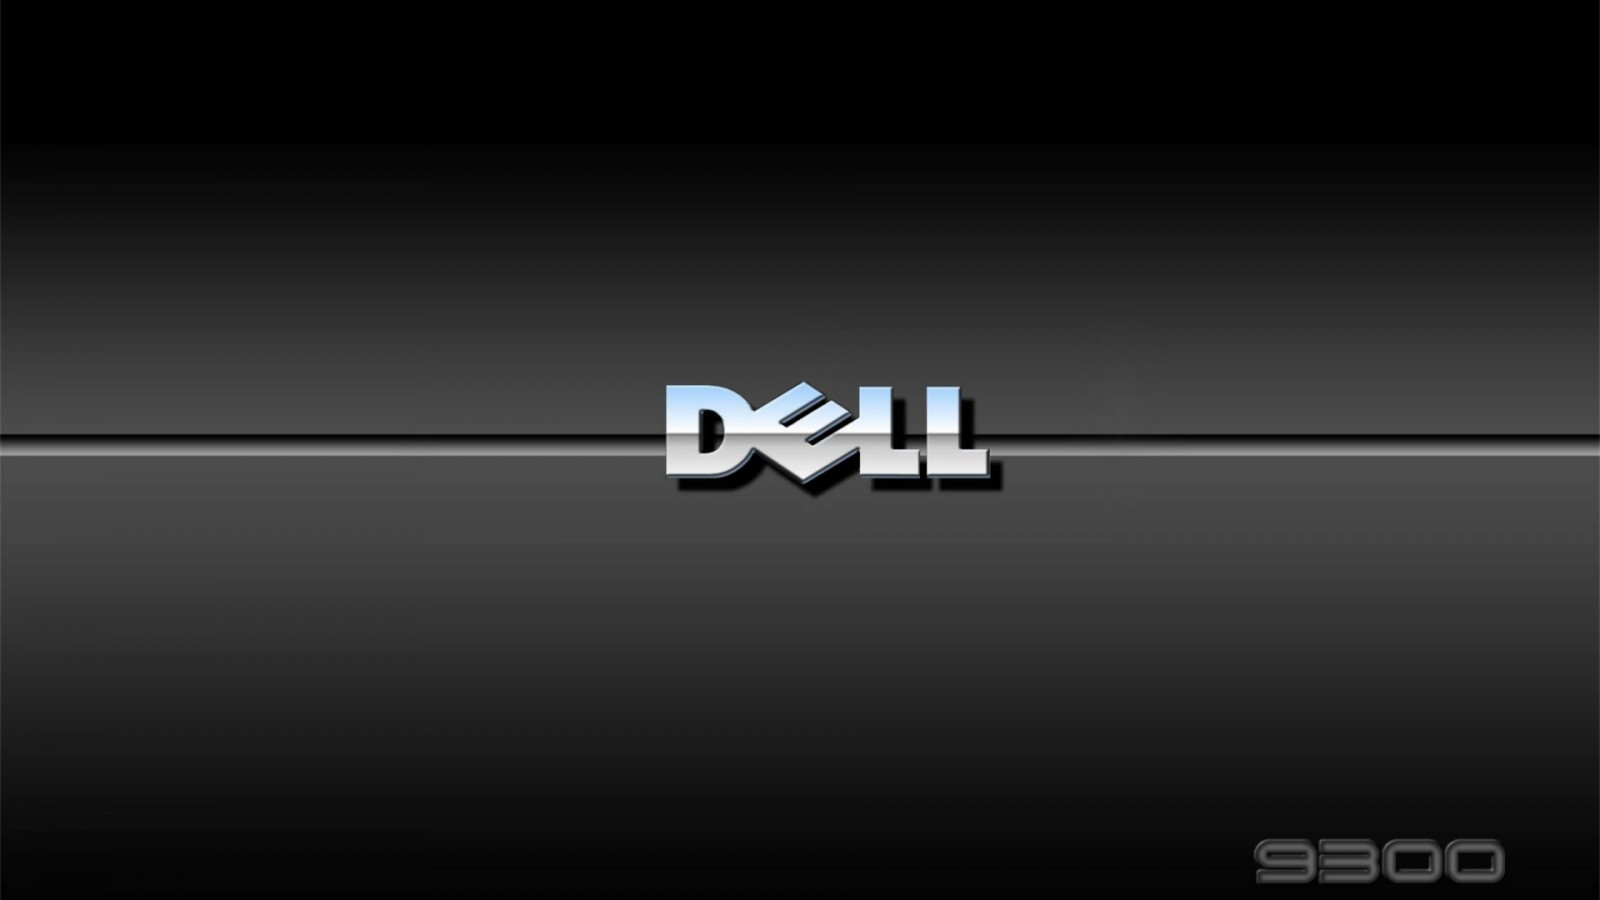 Hd wallpapers for dell laptop